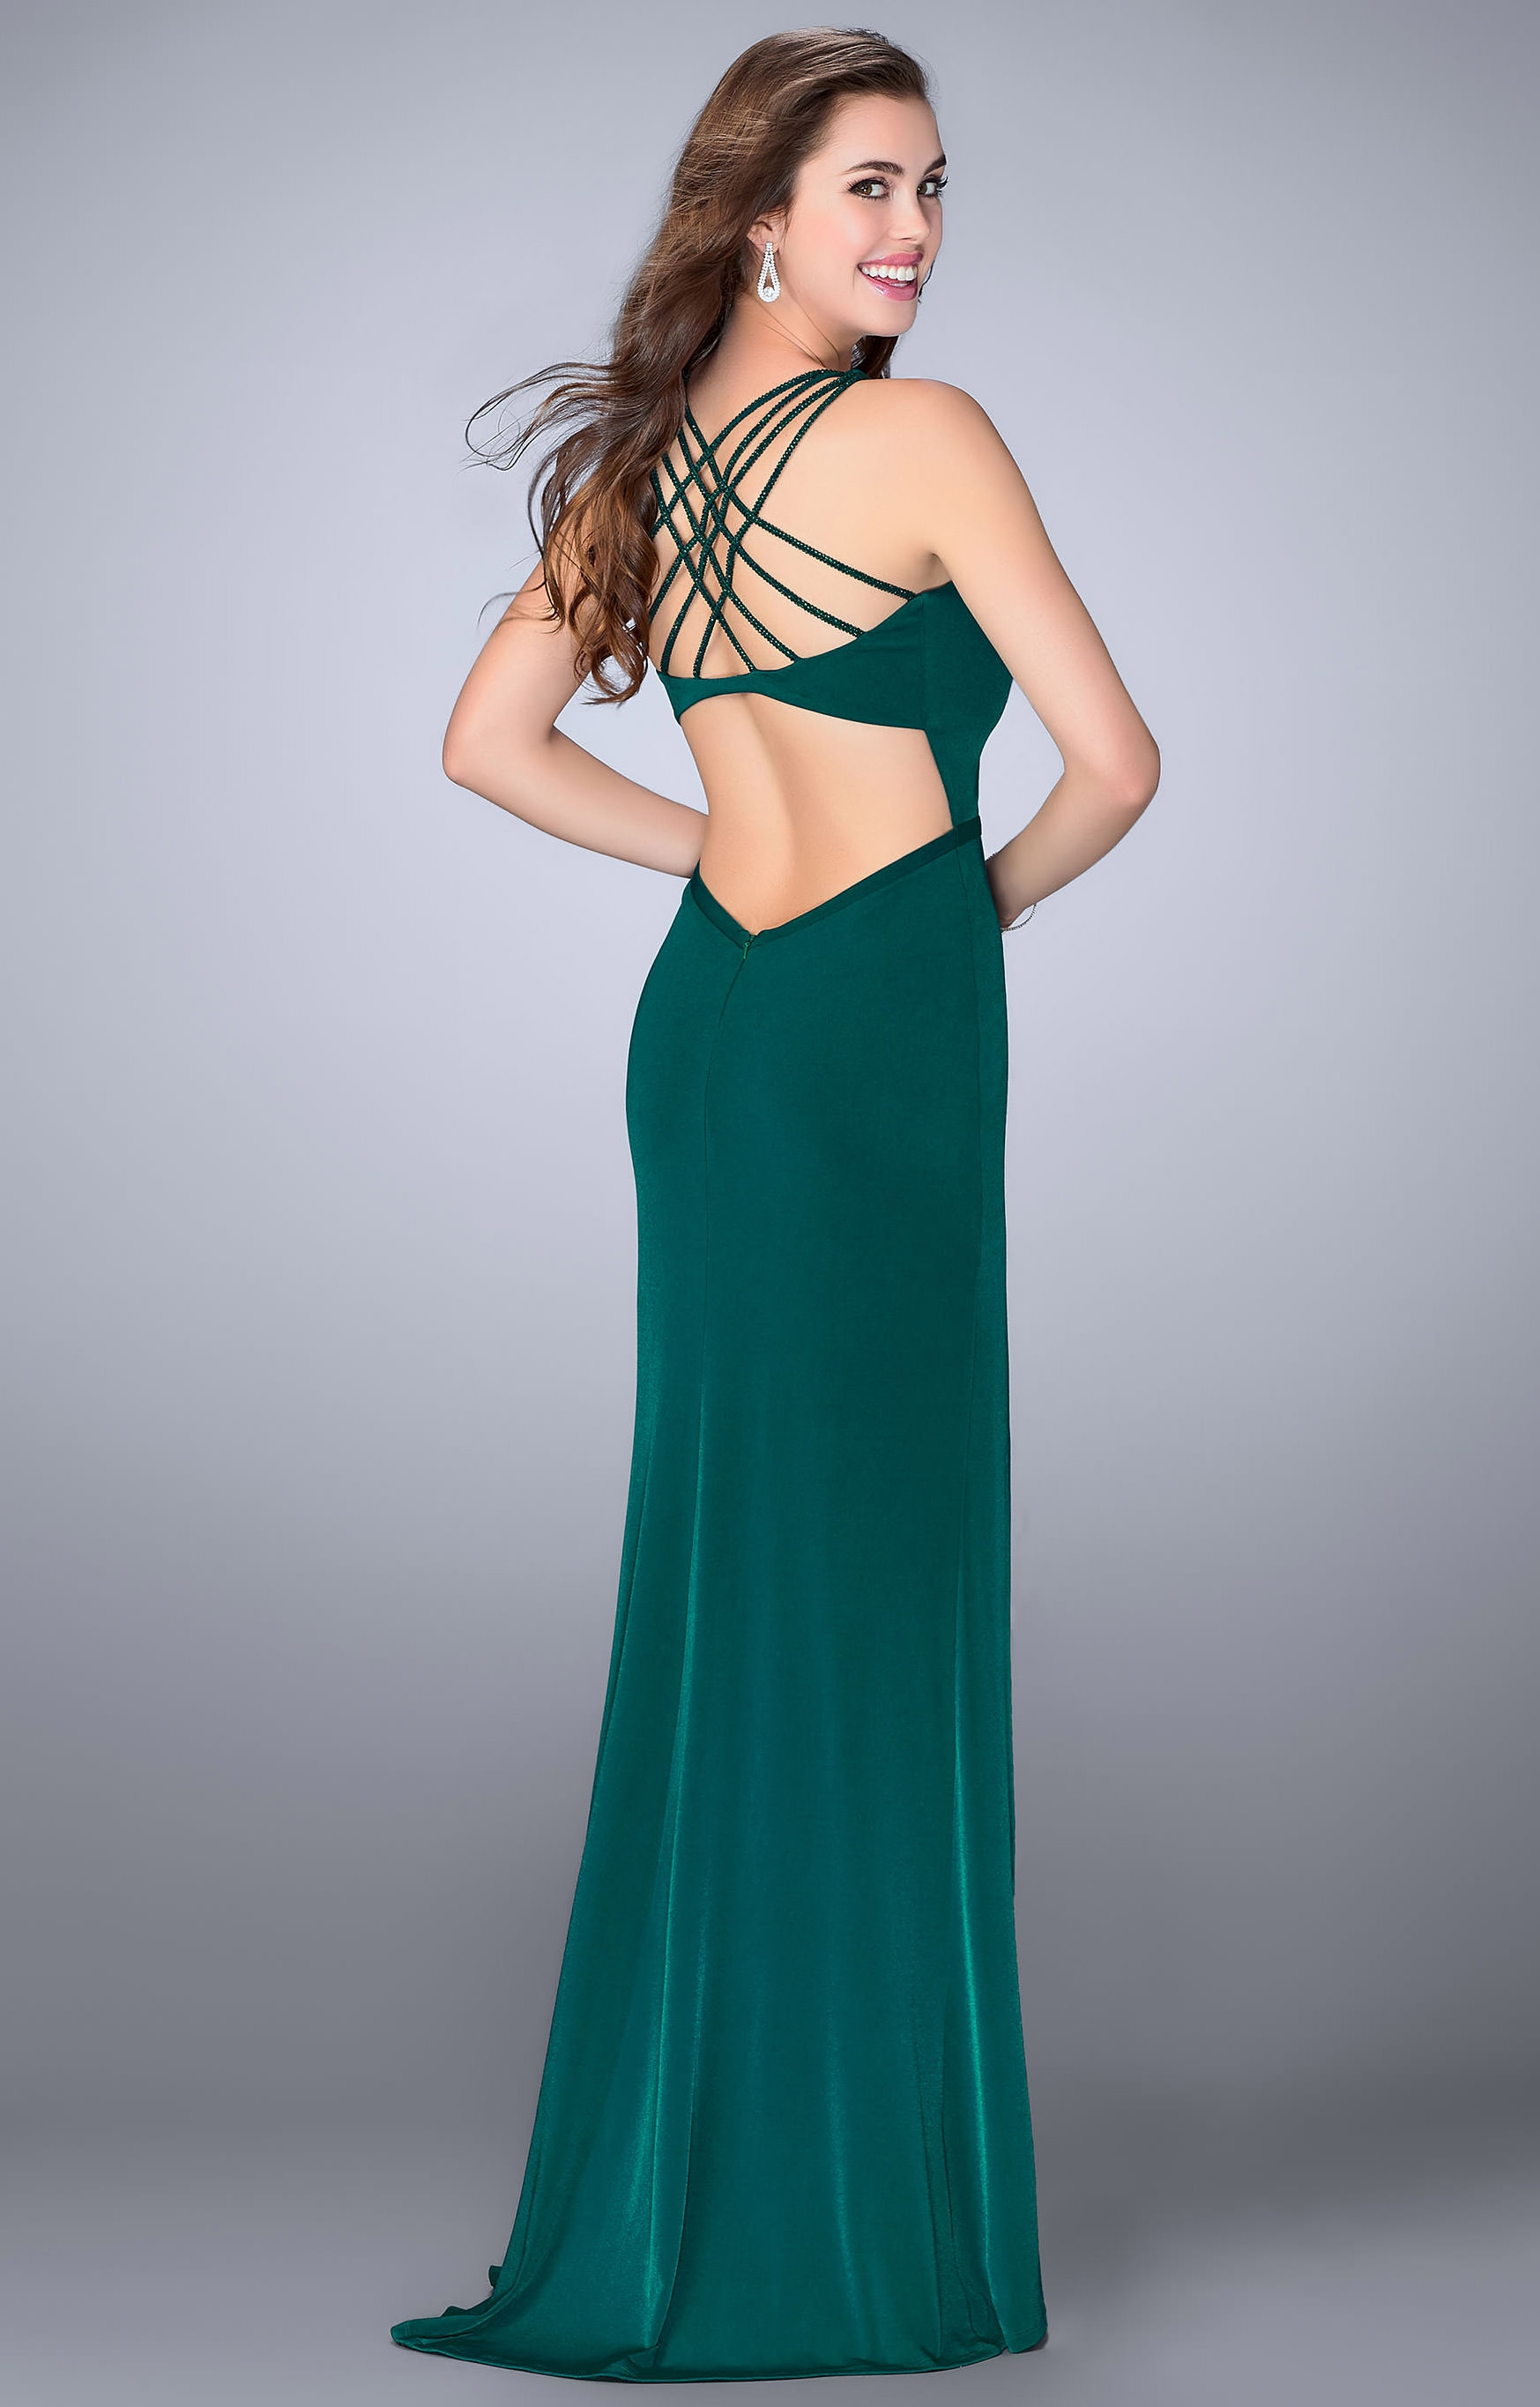 La Femme 24437 - Jersey Knit Dress with High Slit and Open Back Prom ...